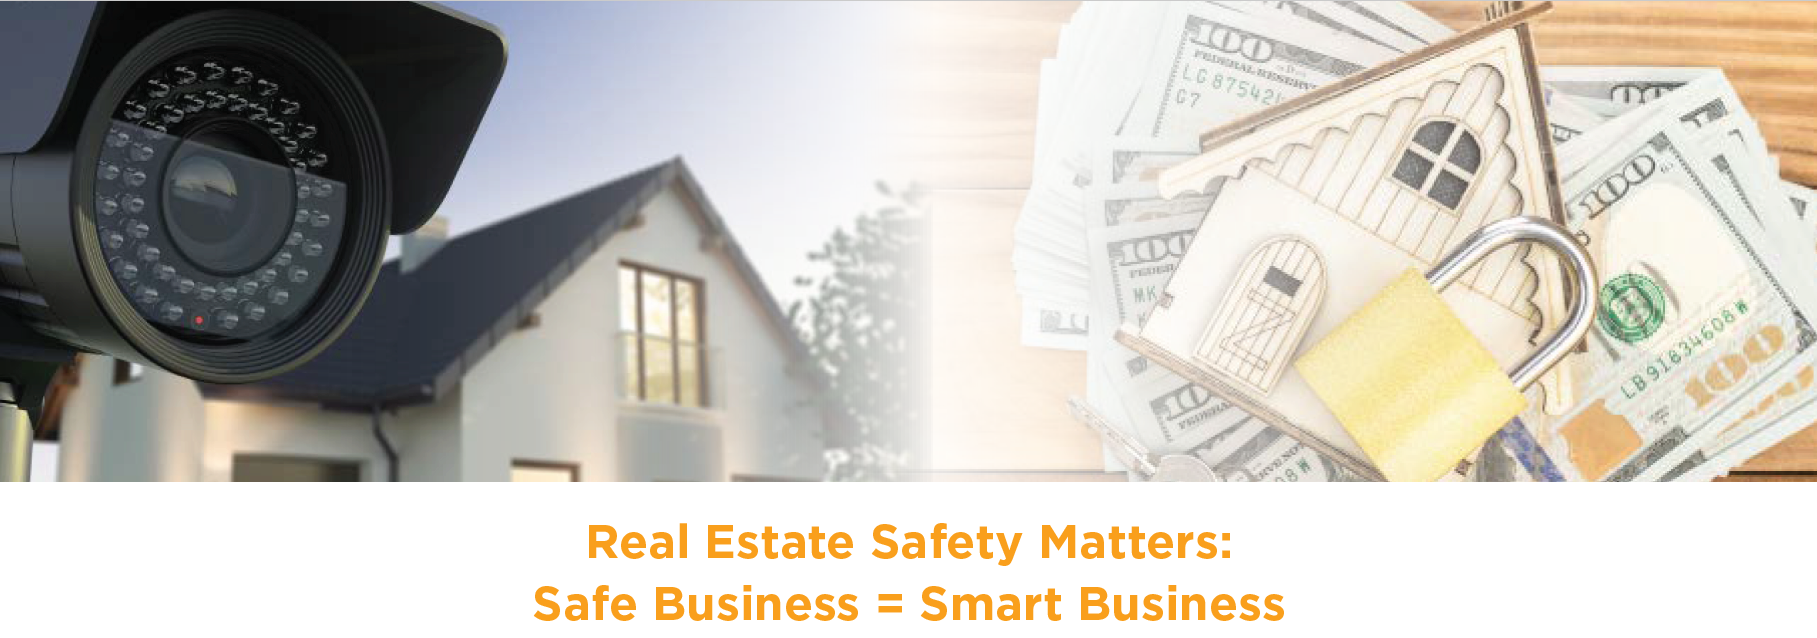 Lunch & Learn: Real Estate Safety Matters Certification